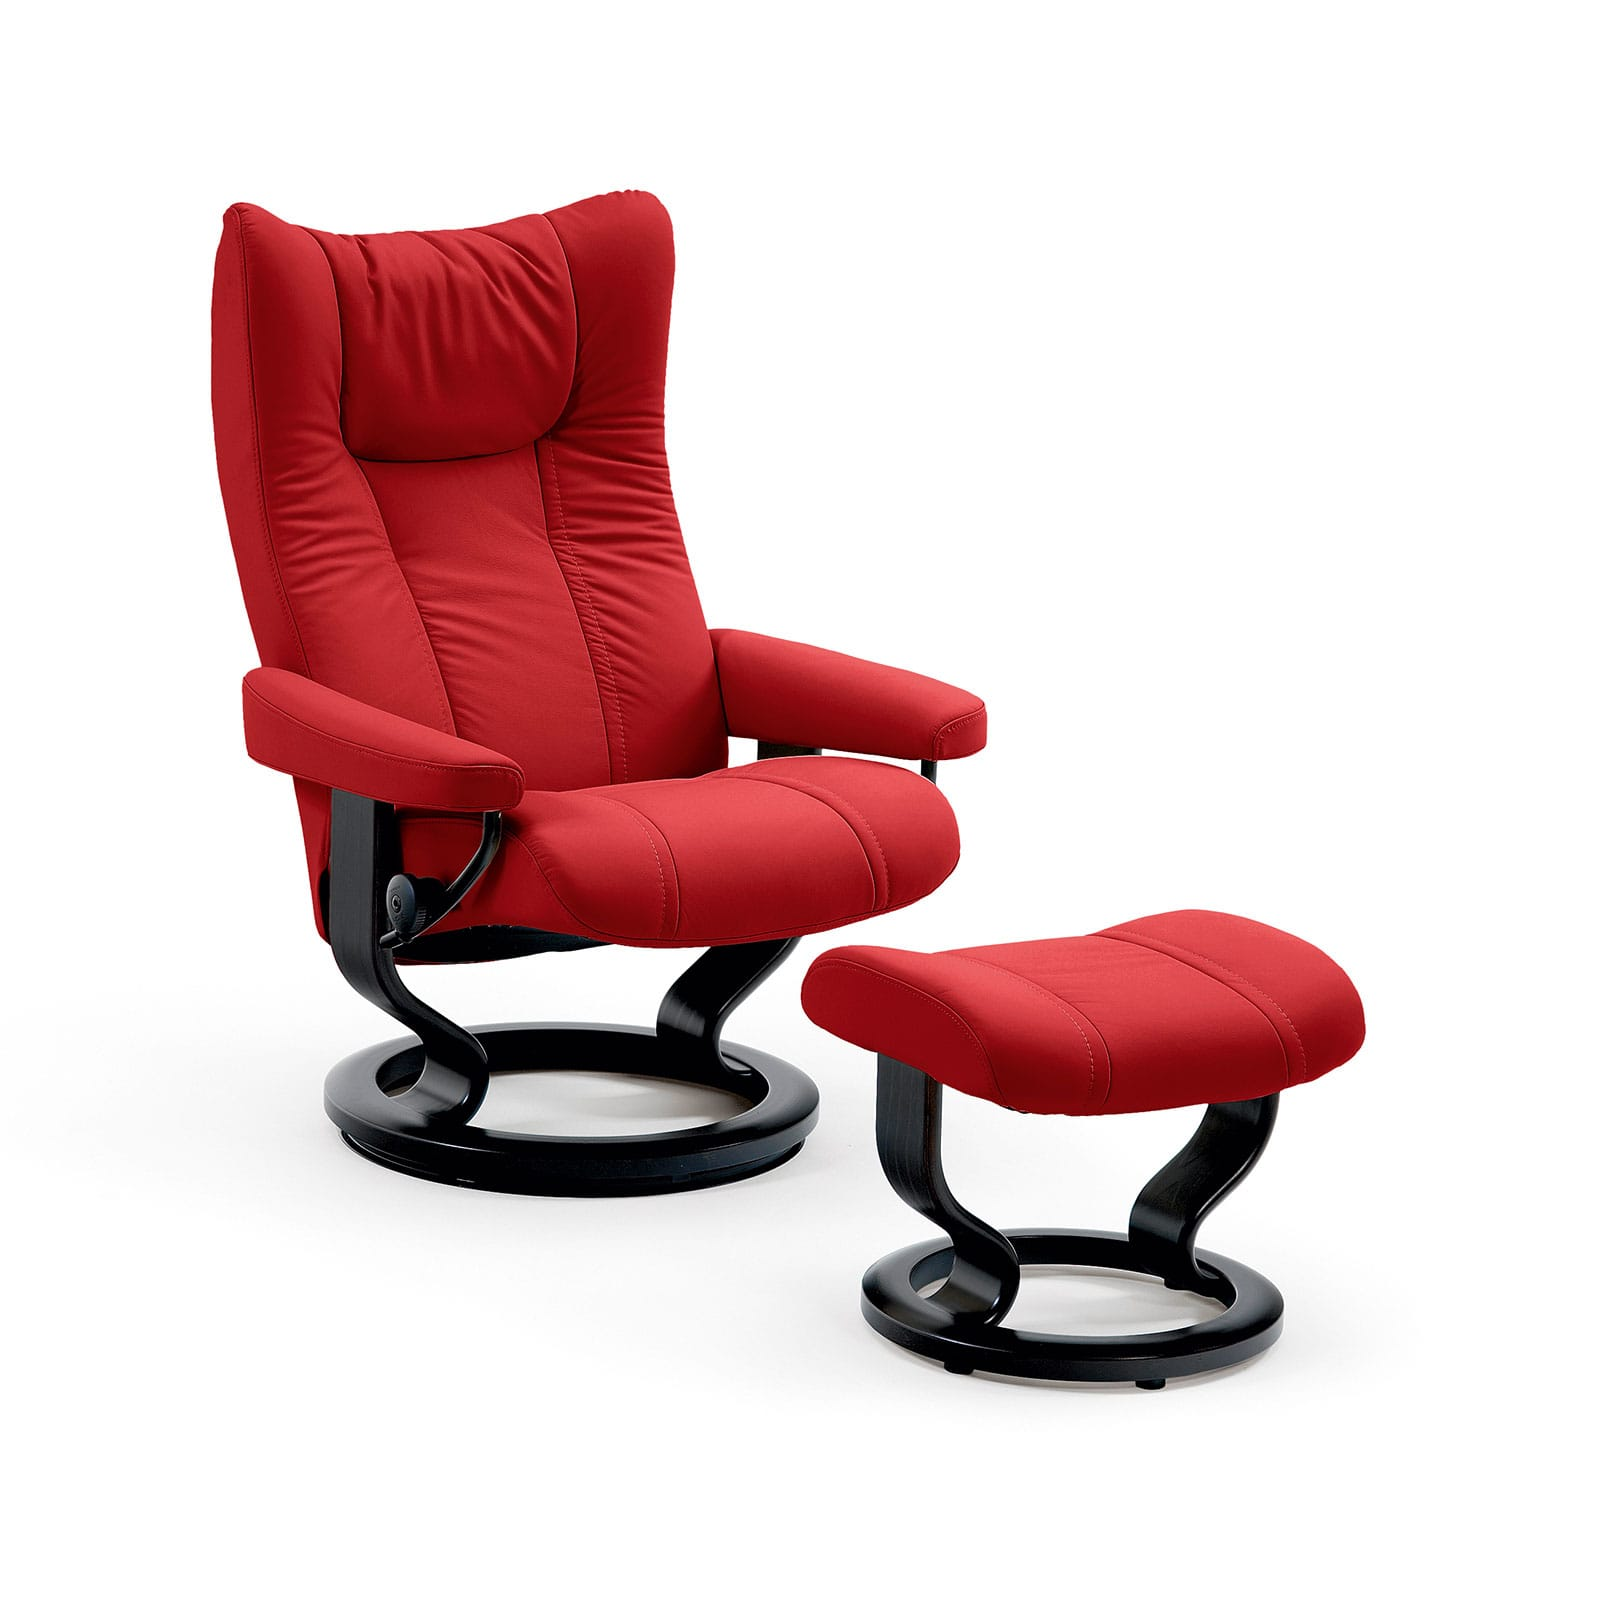 Stressless Wing Signature Sessel Stressless Sessel Angebote Stressless Sessel Wing